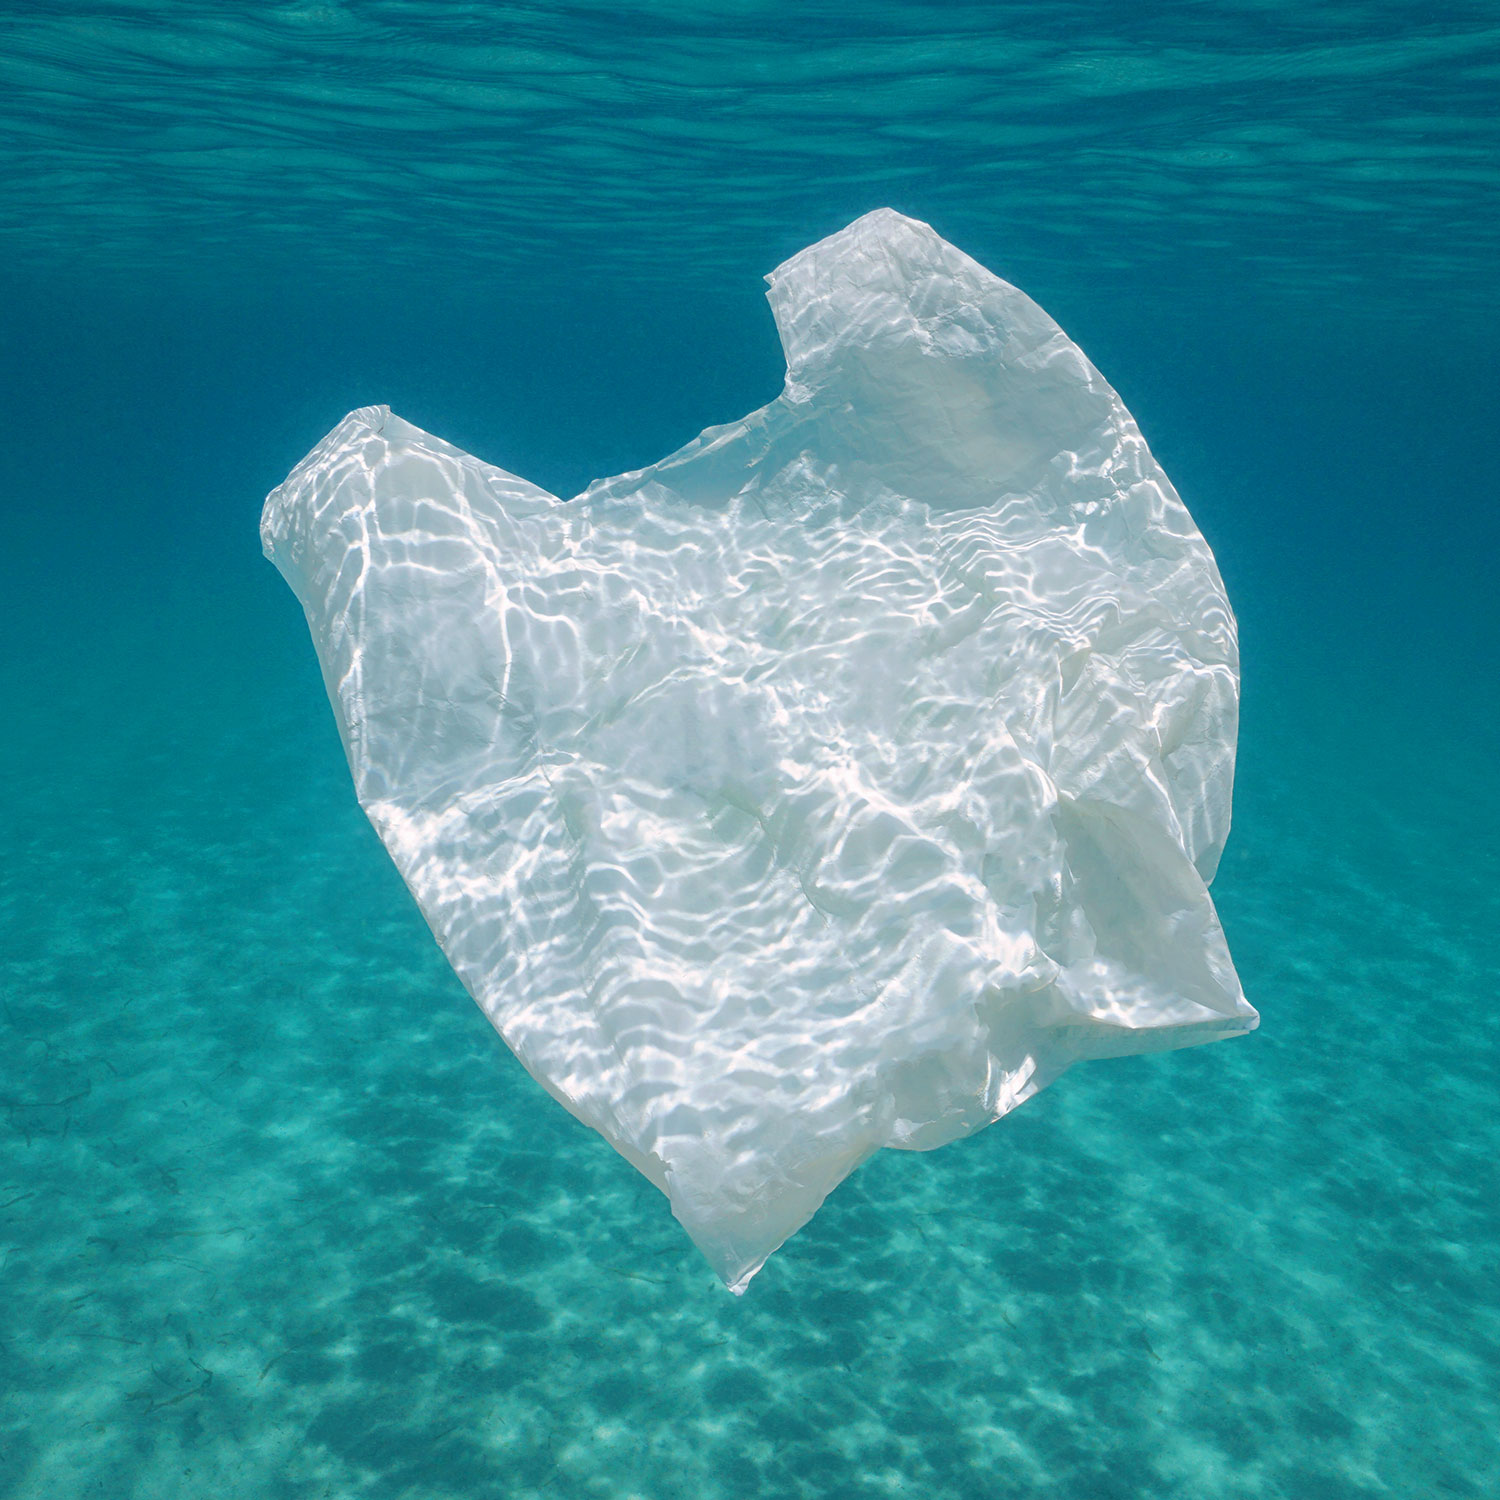 Image of single use plastic bag in water